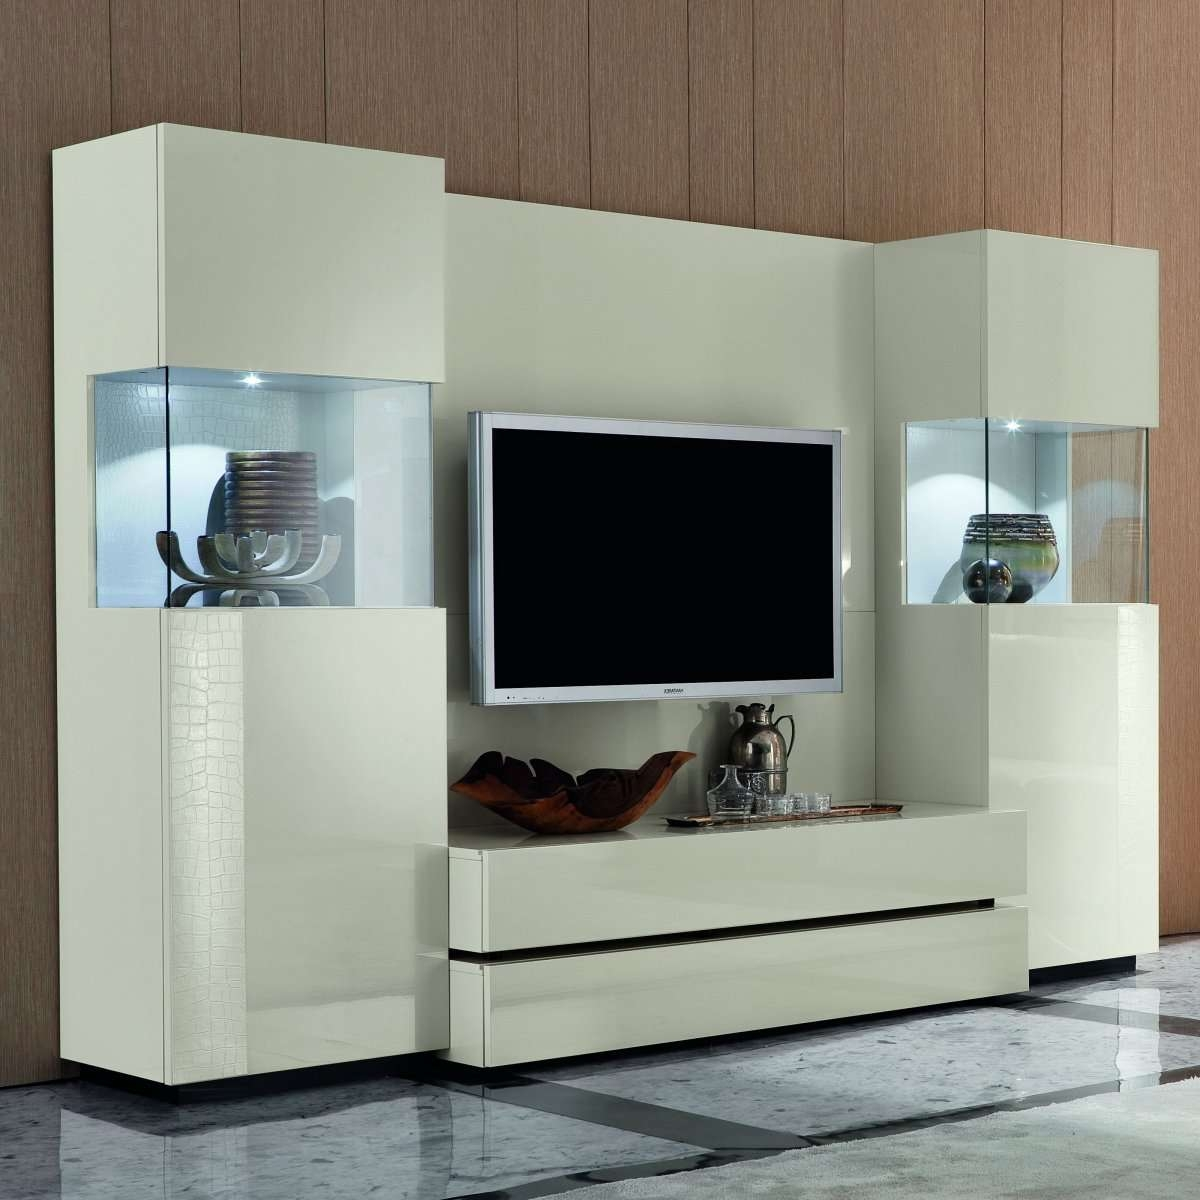 Simple Big Tv Cabinet Excellent Home Design Luxury Under Big Tv With Regard To Big Tv Cabinets (View 11 of 20)